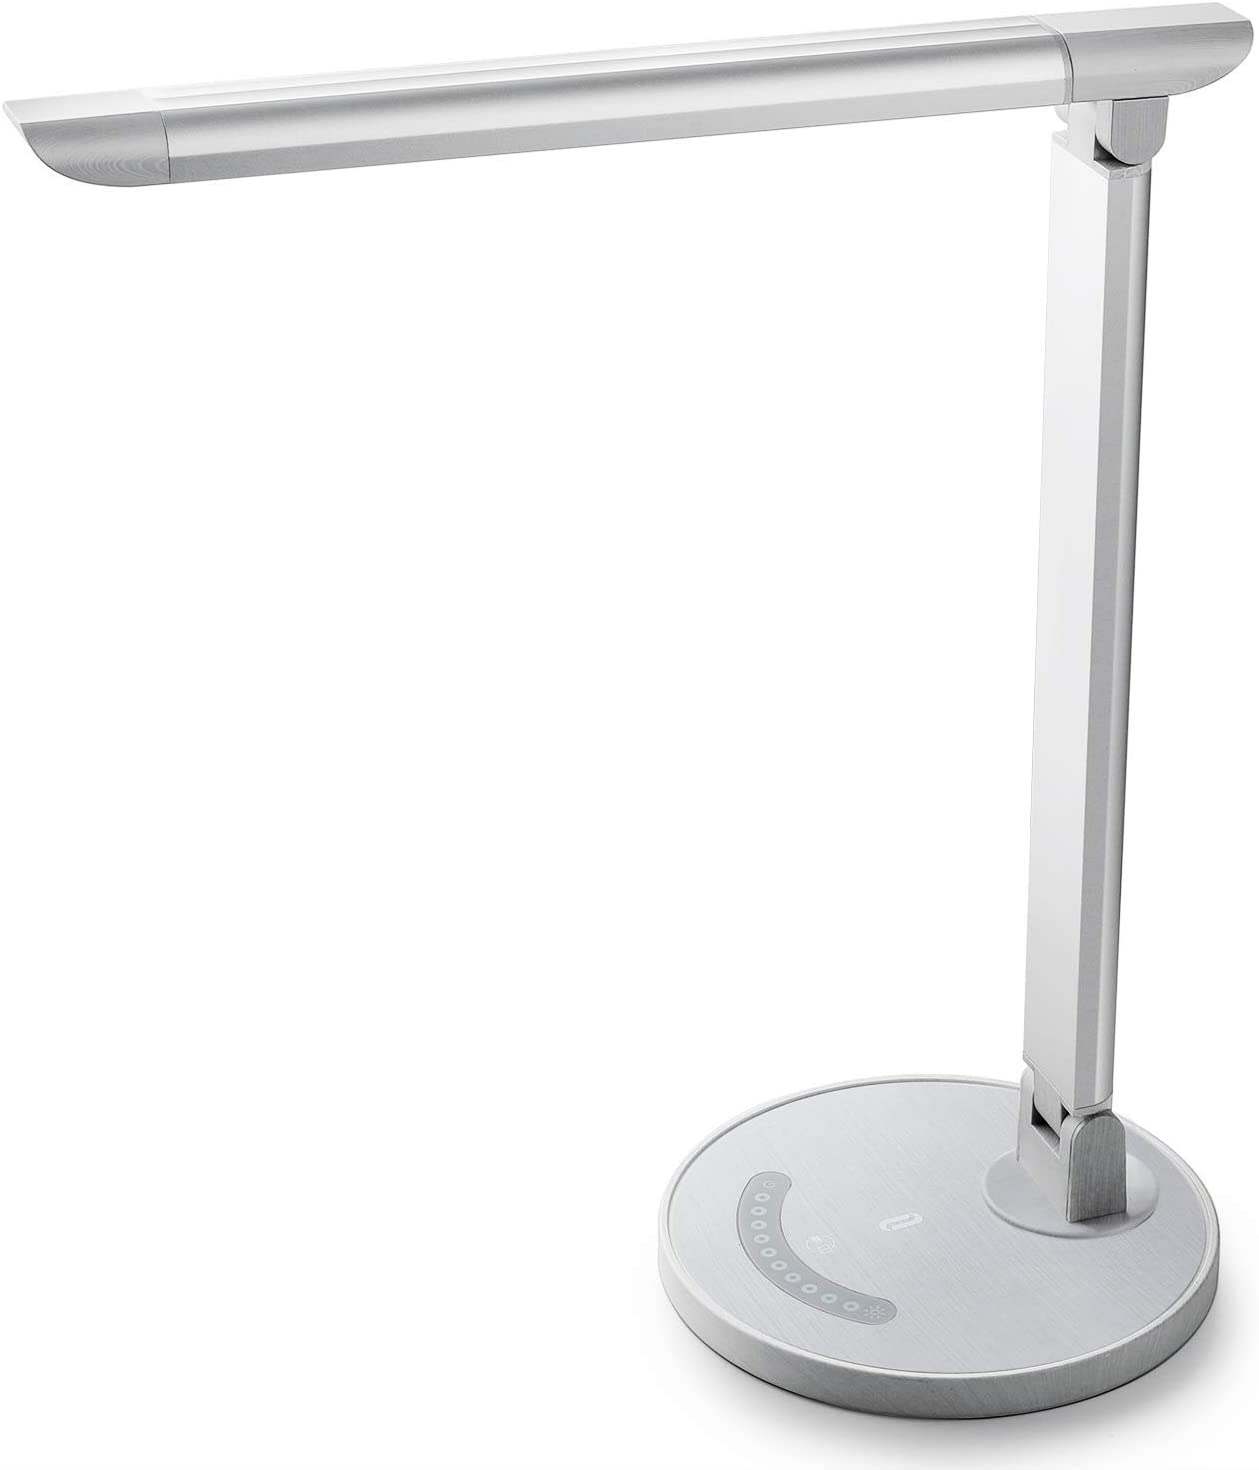 TaoTronics Stylish Metal LED Desk Lamp, Office Light with 10V/10A USB Port, 10  Color Modes, 10 Brightness Levels, Touch Control, Timer, Night Light